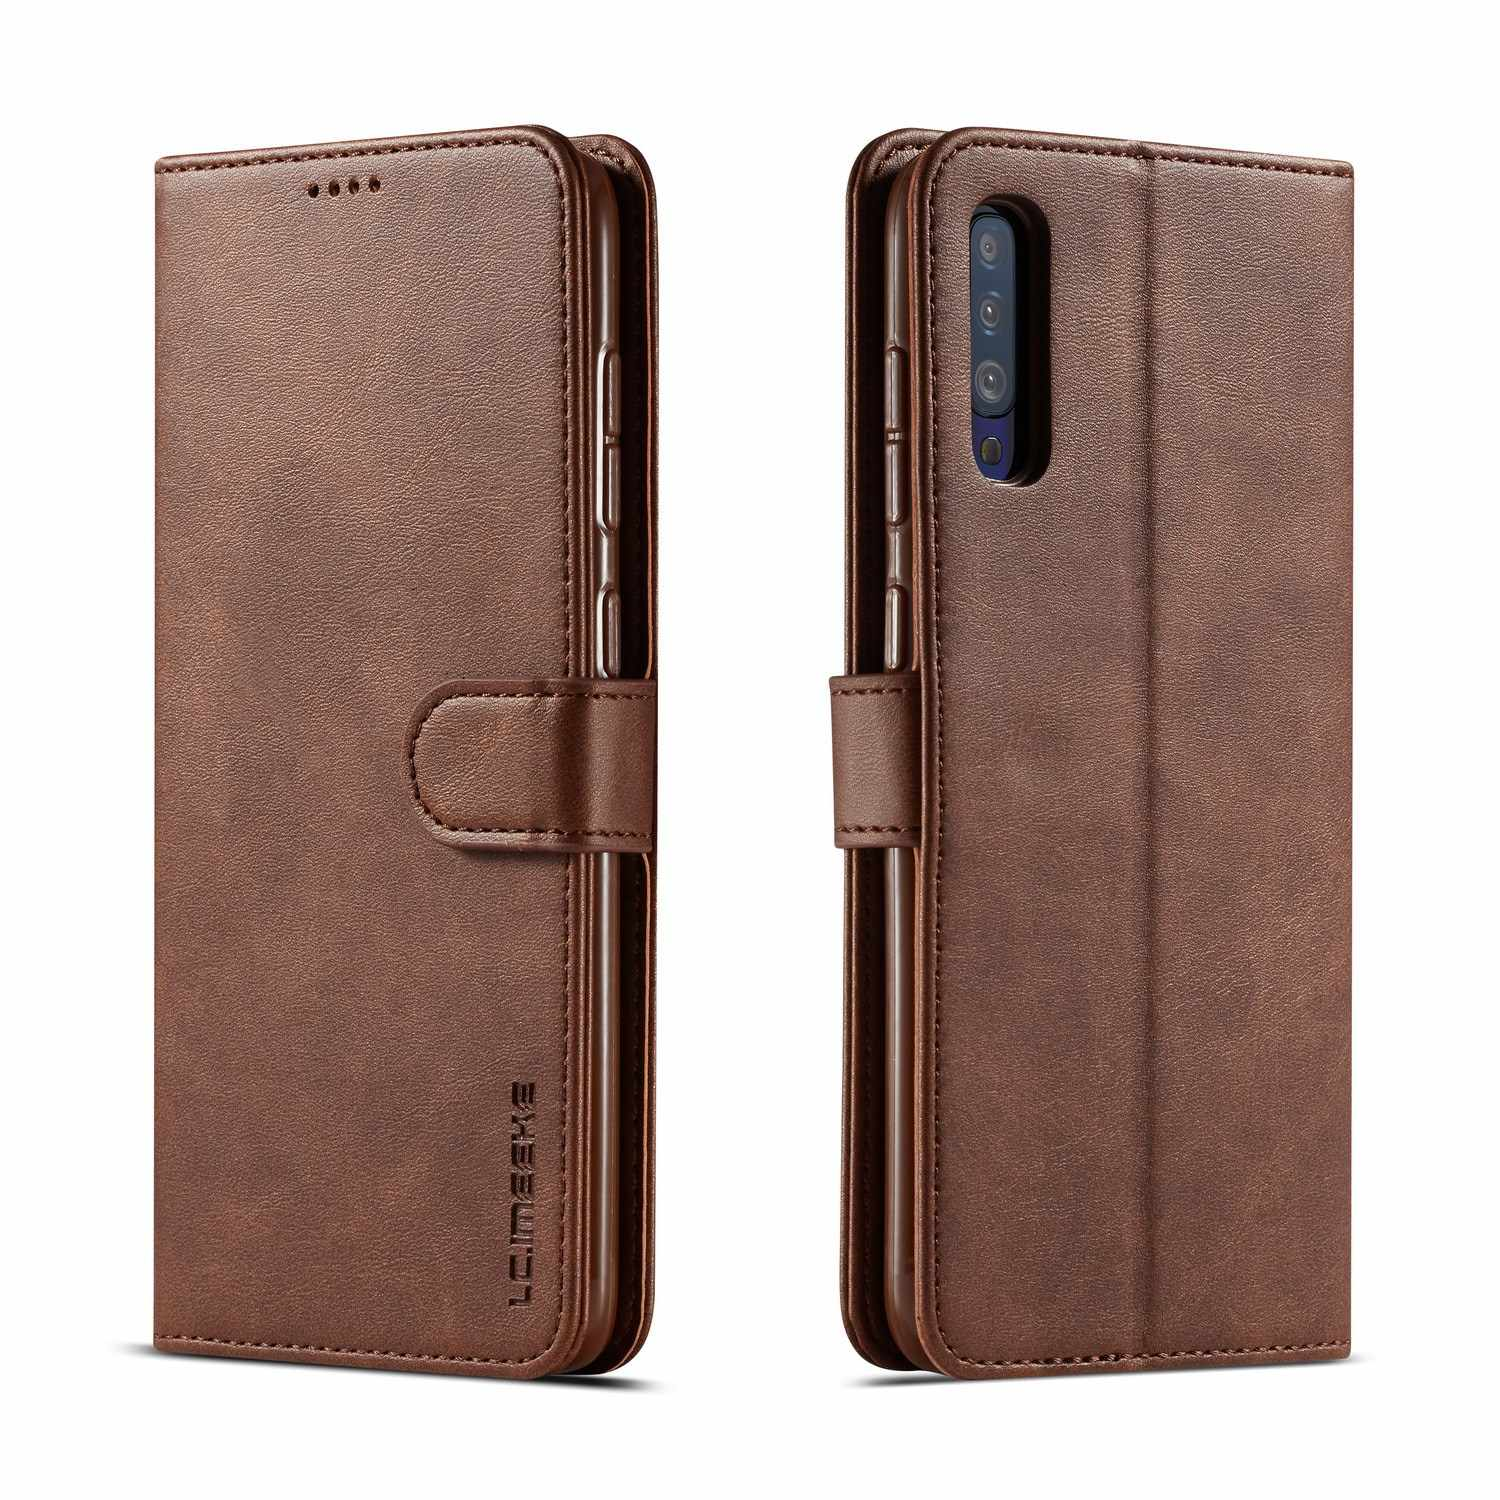 Phone Case For Samsung Galaxy A50 Case Luxe Leather Flip Wallet Cover For Samsung A50 A 50 Phone Bag Case Galaxy A50 Coque